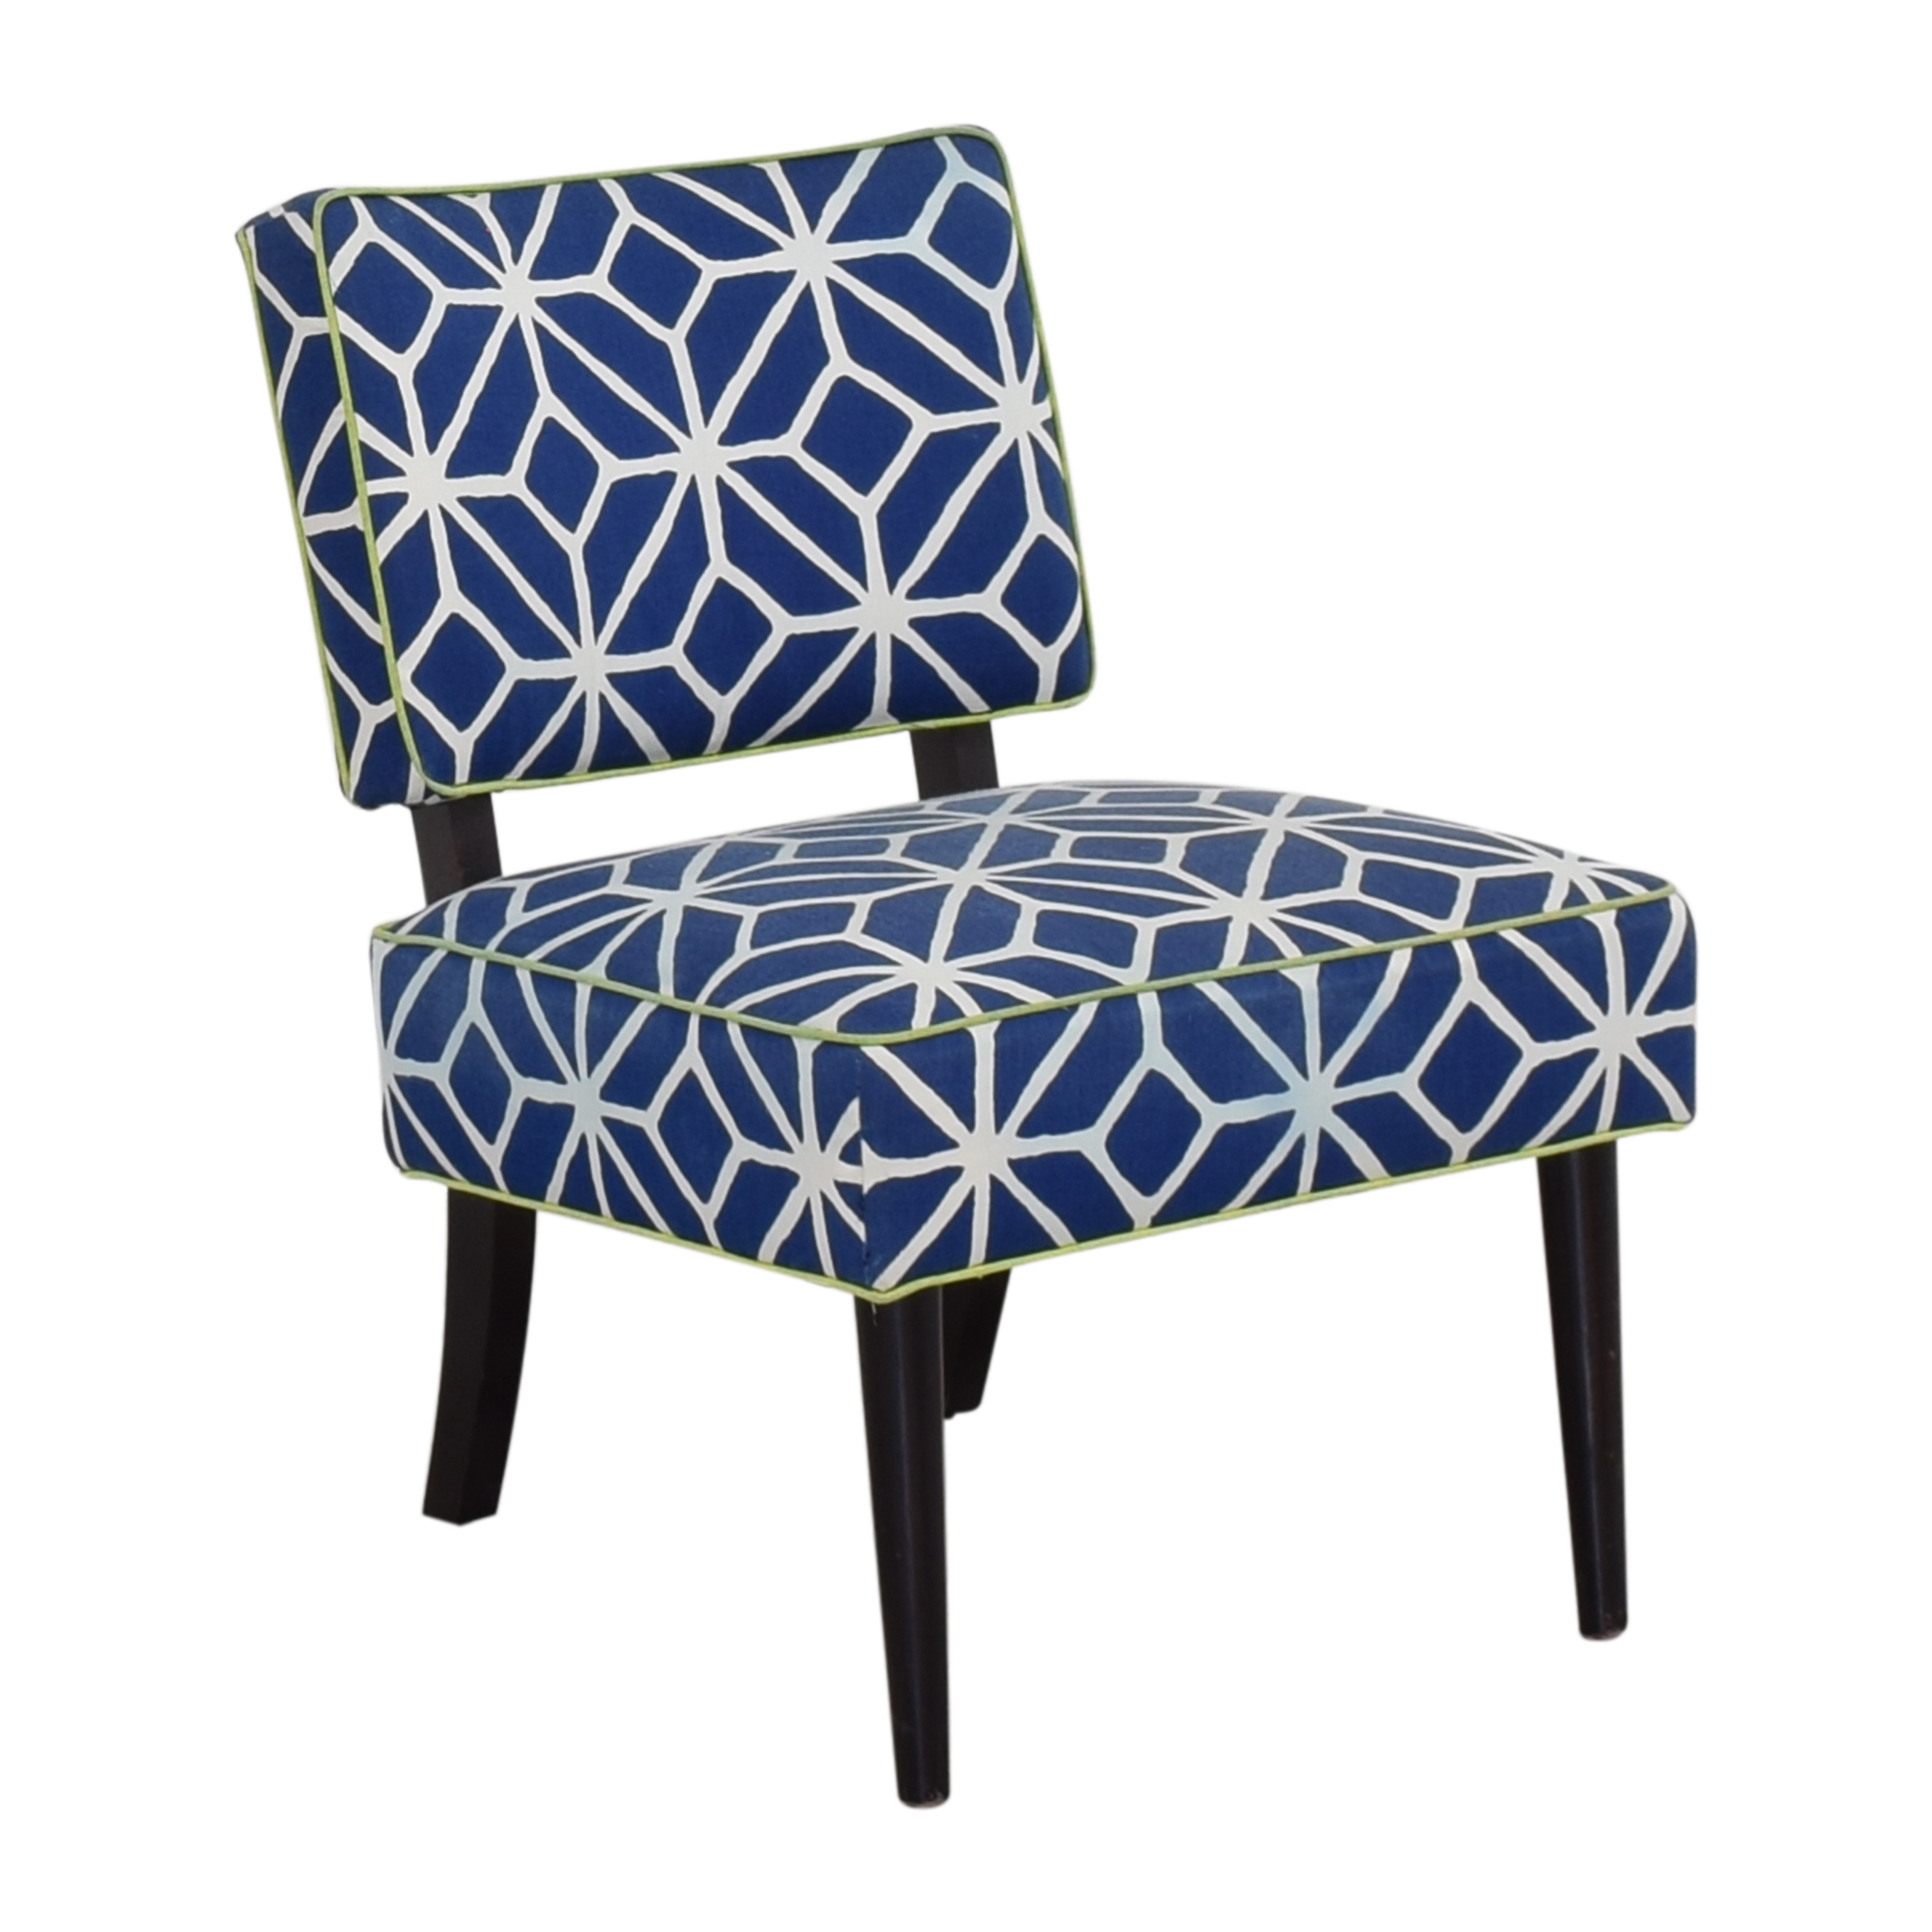 Room & Board Room & Board Accent Chair price